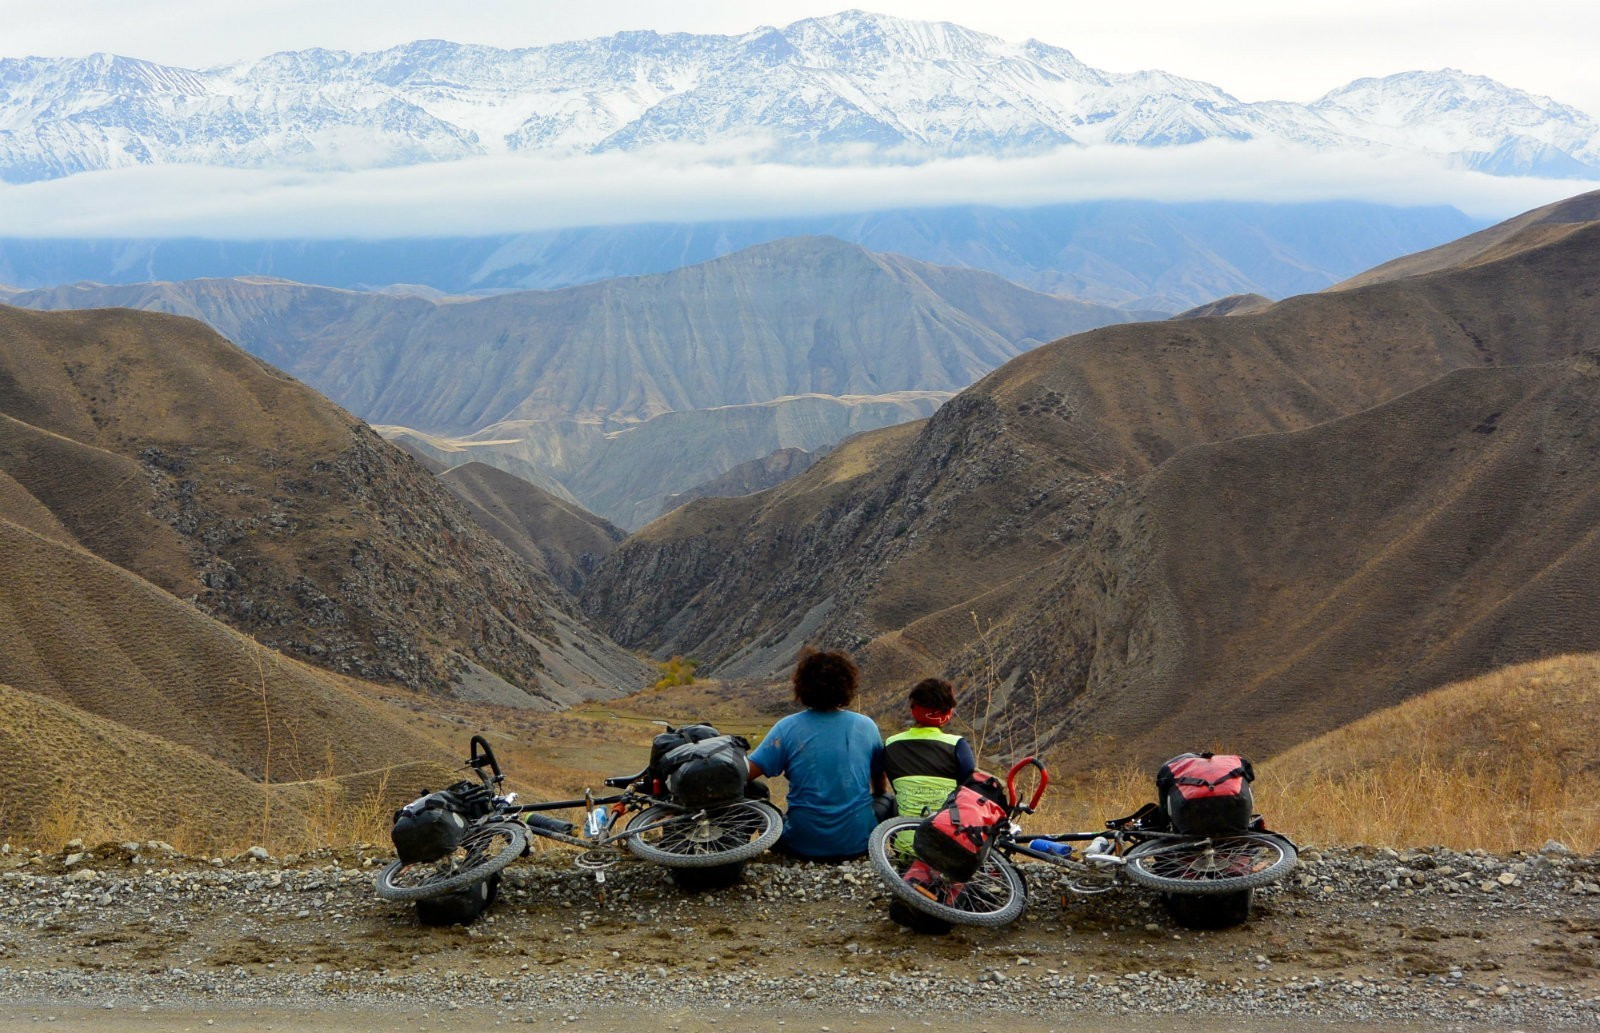 Bikepacker tales: how to see the world from a saddle